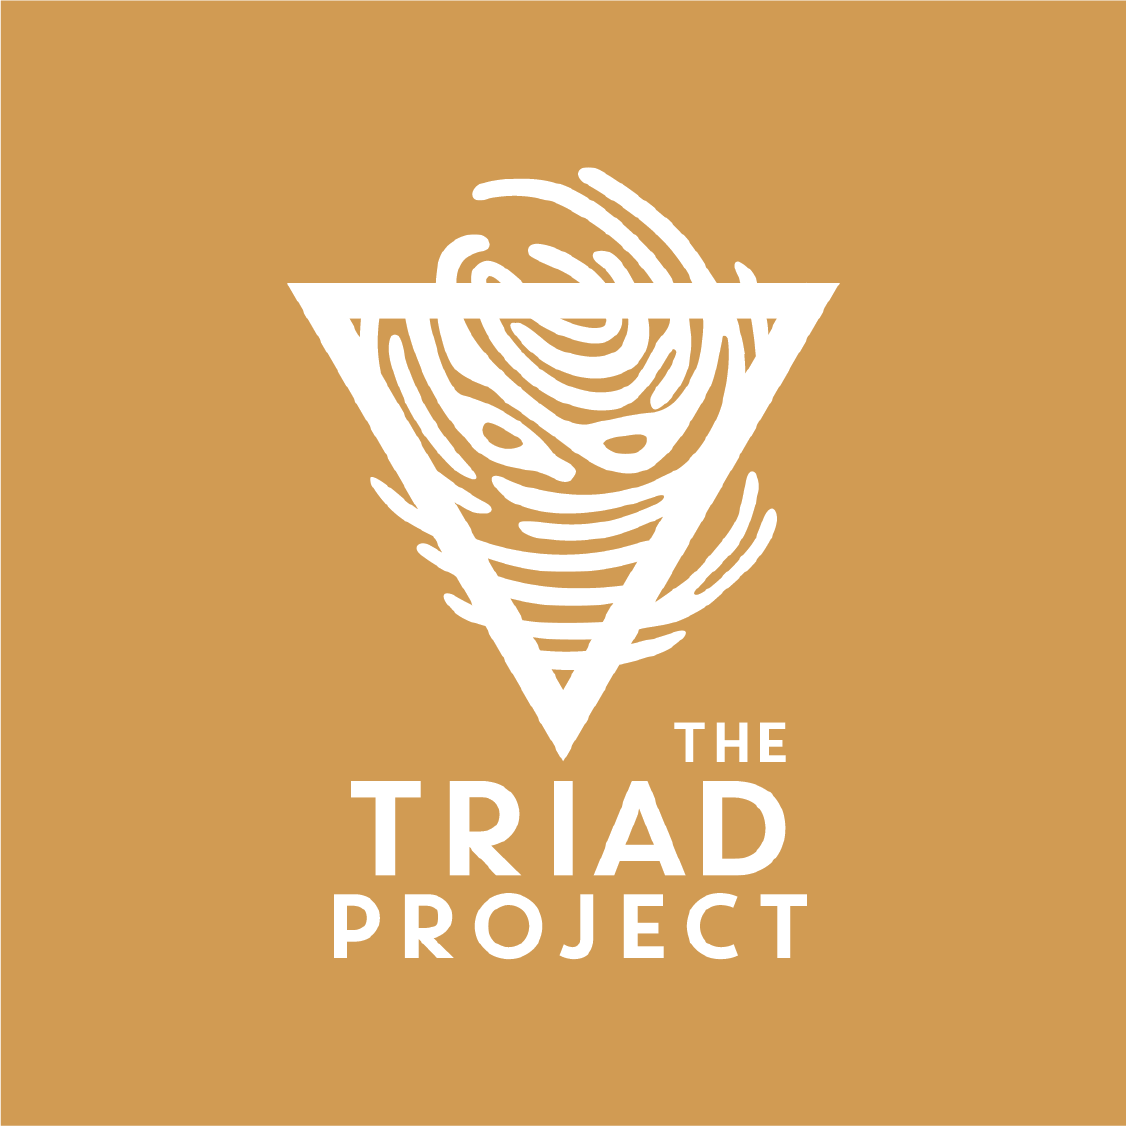 Vape Juice Liquids Starter Kits Mods Pods And More Og Milk Tea Max Vg Usa Premium Eliquid The Triad Project Offers A Tasty Line Of Made E Liquid Without Incredible Mark Up In Price We Are Setting New Standard Our Industry